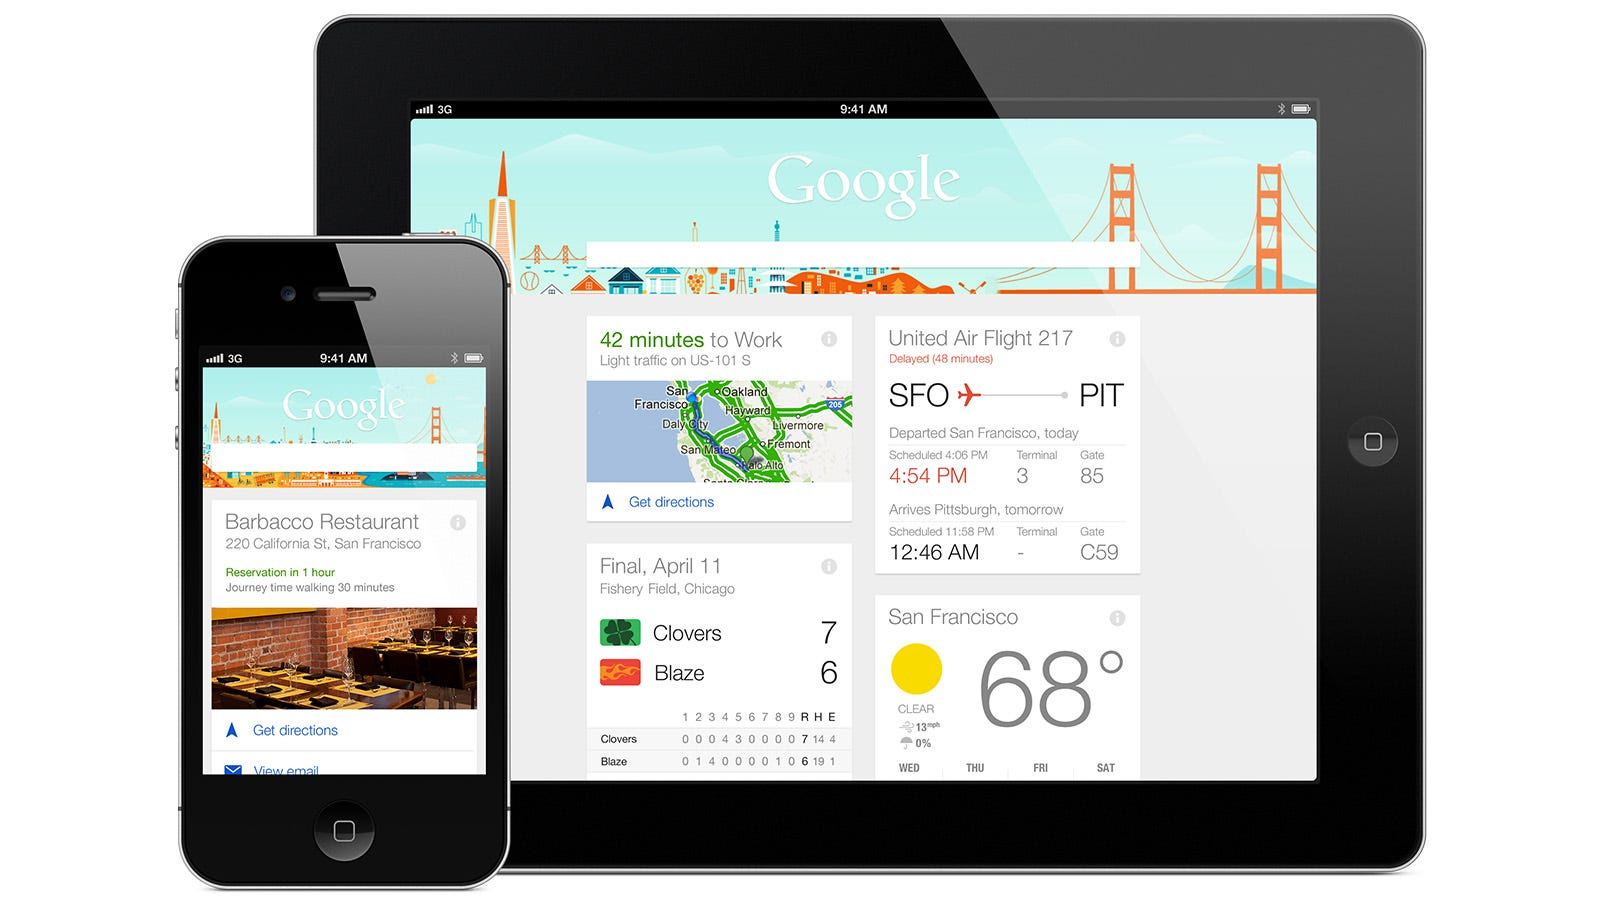 Google Now for iPhone and iPad: It's Here, and It's Great (UPDATED)